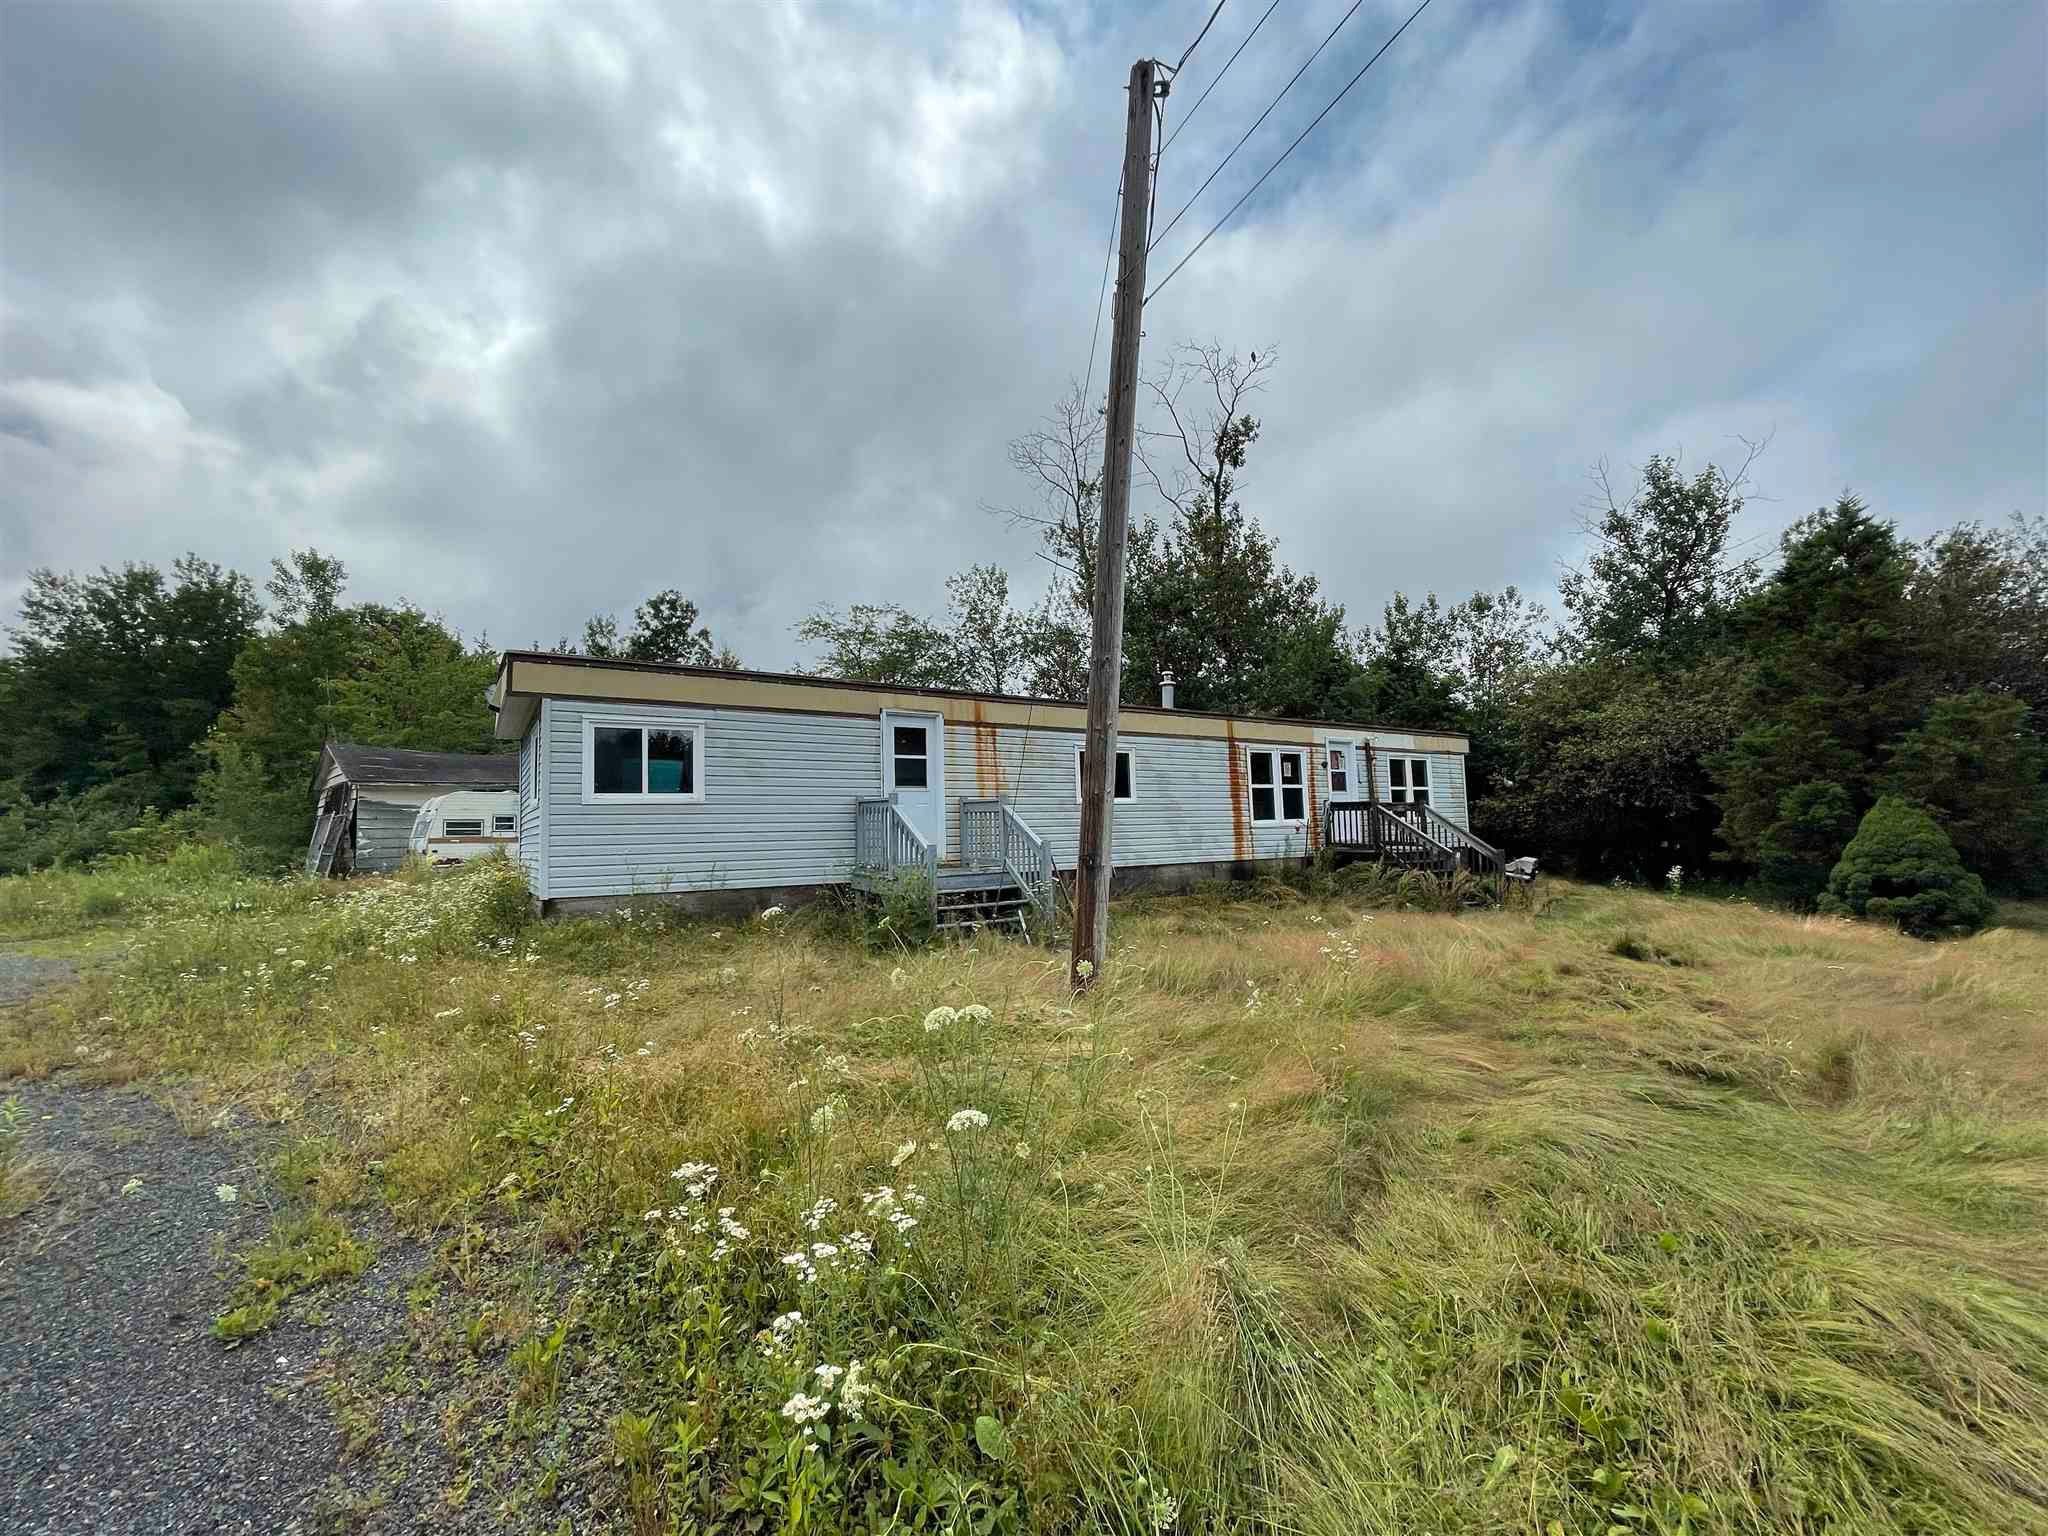 Main Photo: 681 MacKay Road in Linacy: 108-Rural Pictou County Residential for sale (Northern Region)  : MLS®# 202119211